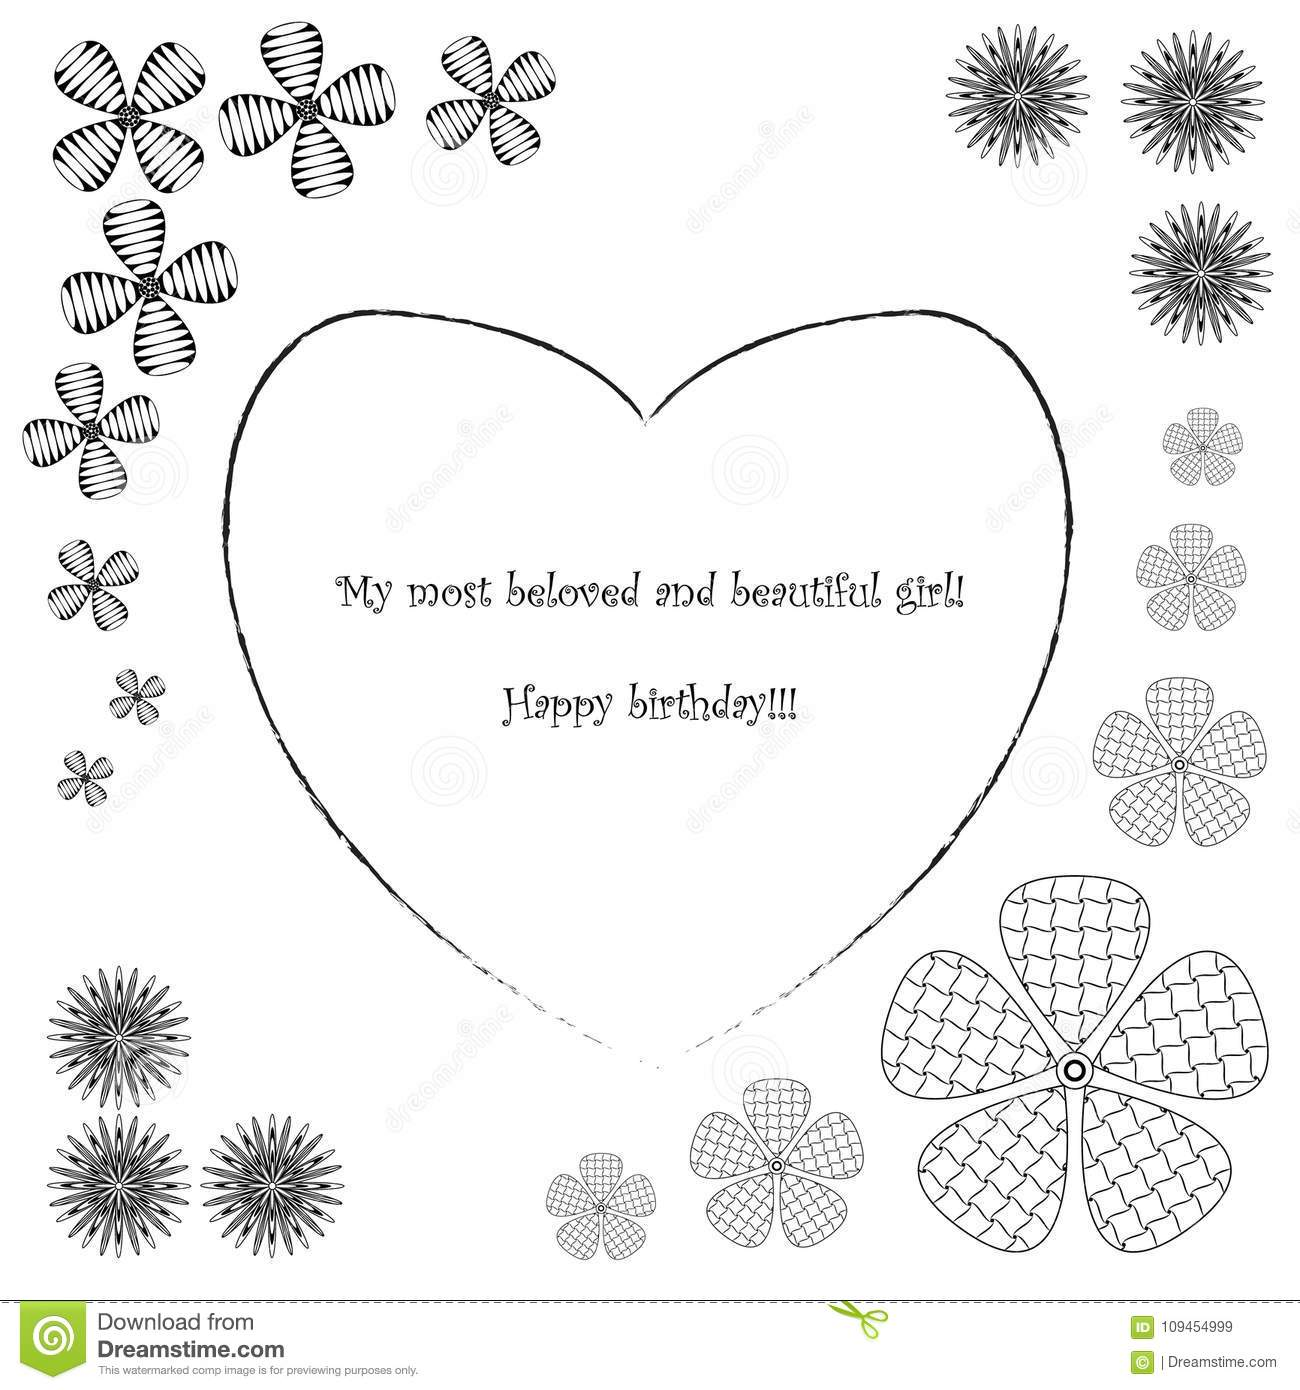 Black And White Postcard From >> Postcard In Zen Style Art Happy Birthday Black And White Postcard